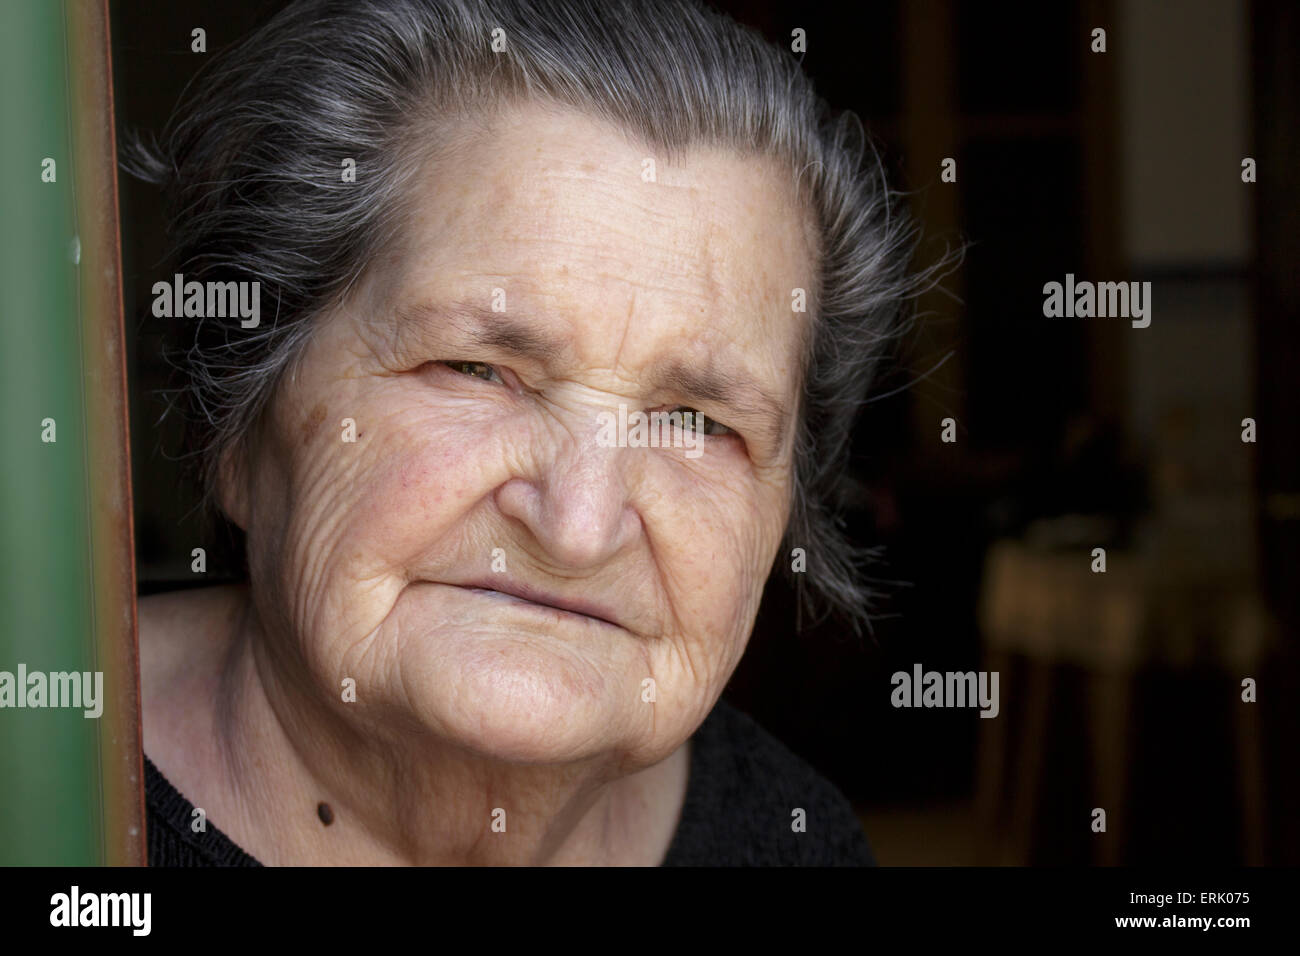 An elderly dressed in mourning looks at the camera from her home's window, in a little andalusian town - Stock Image